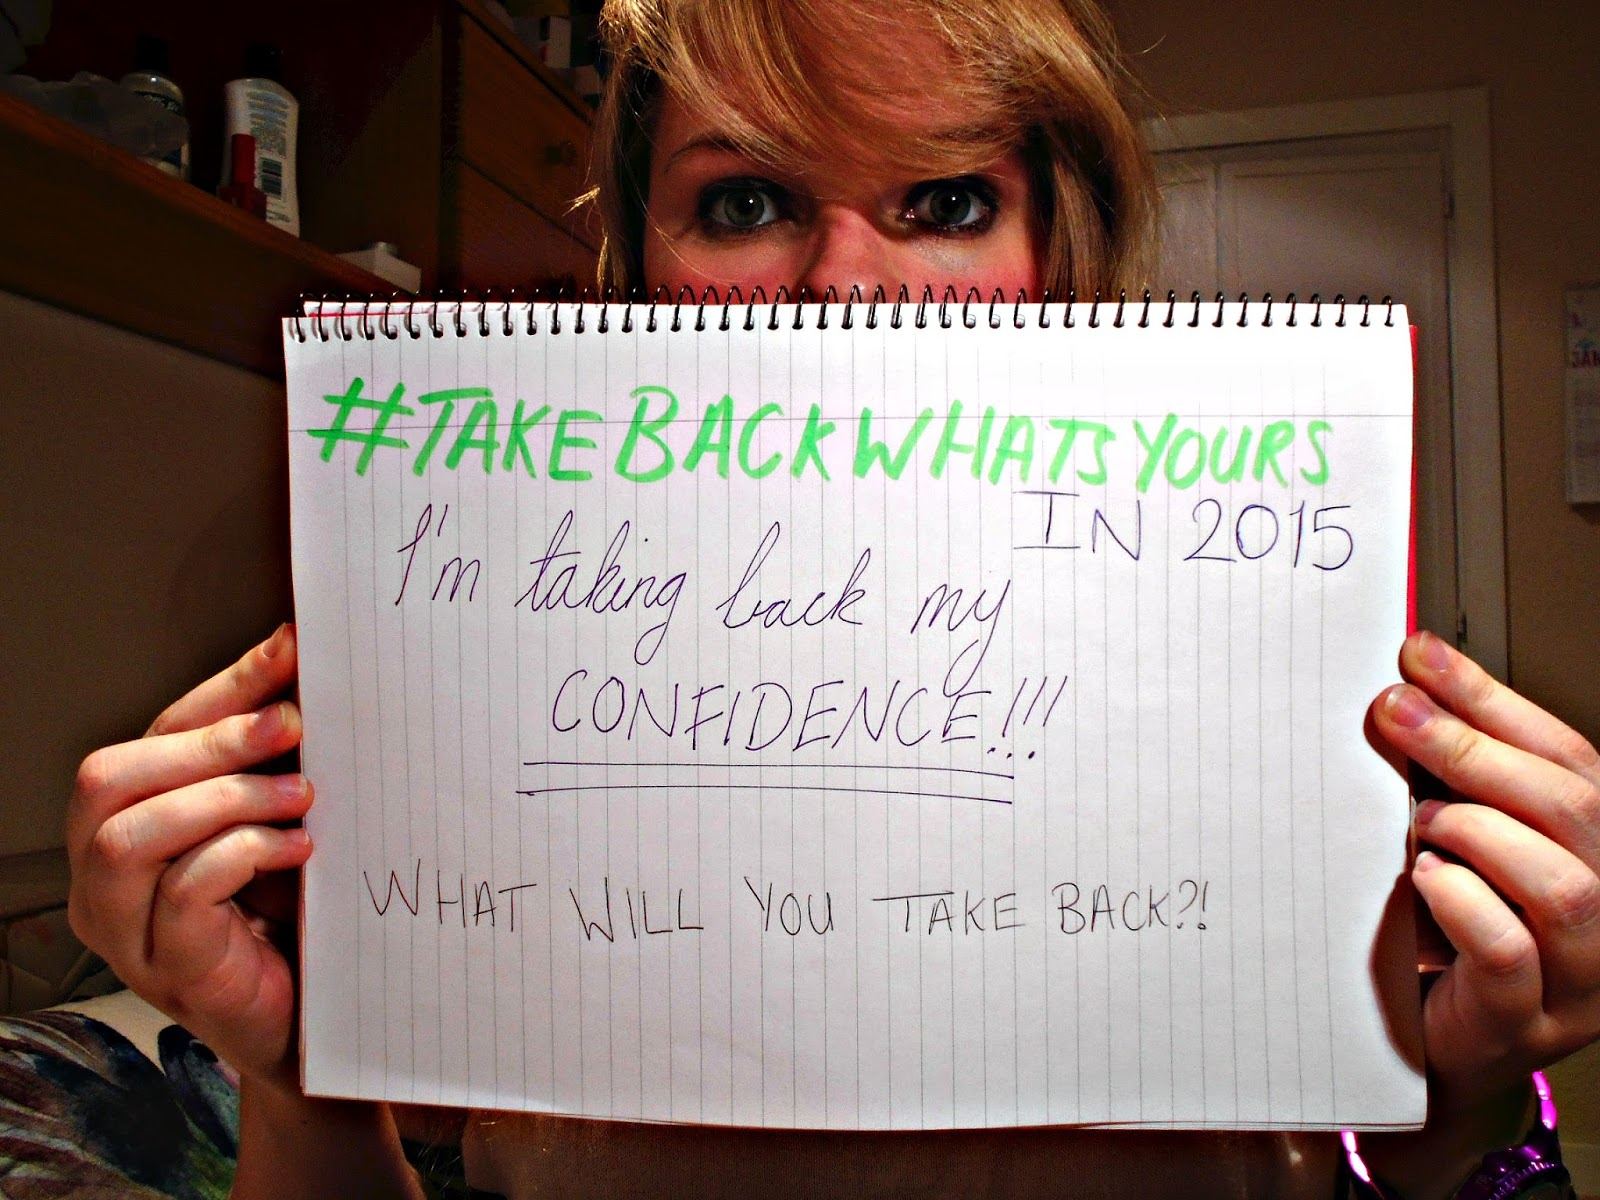 Take Back What's Yours campaign, journeytothecentreofnewexperiences